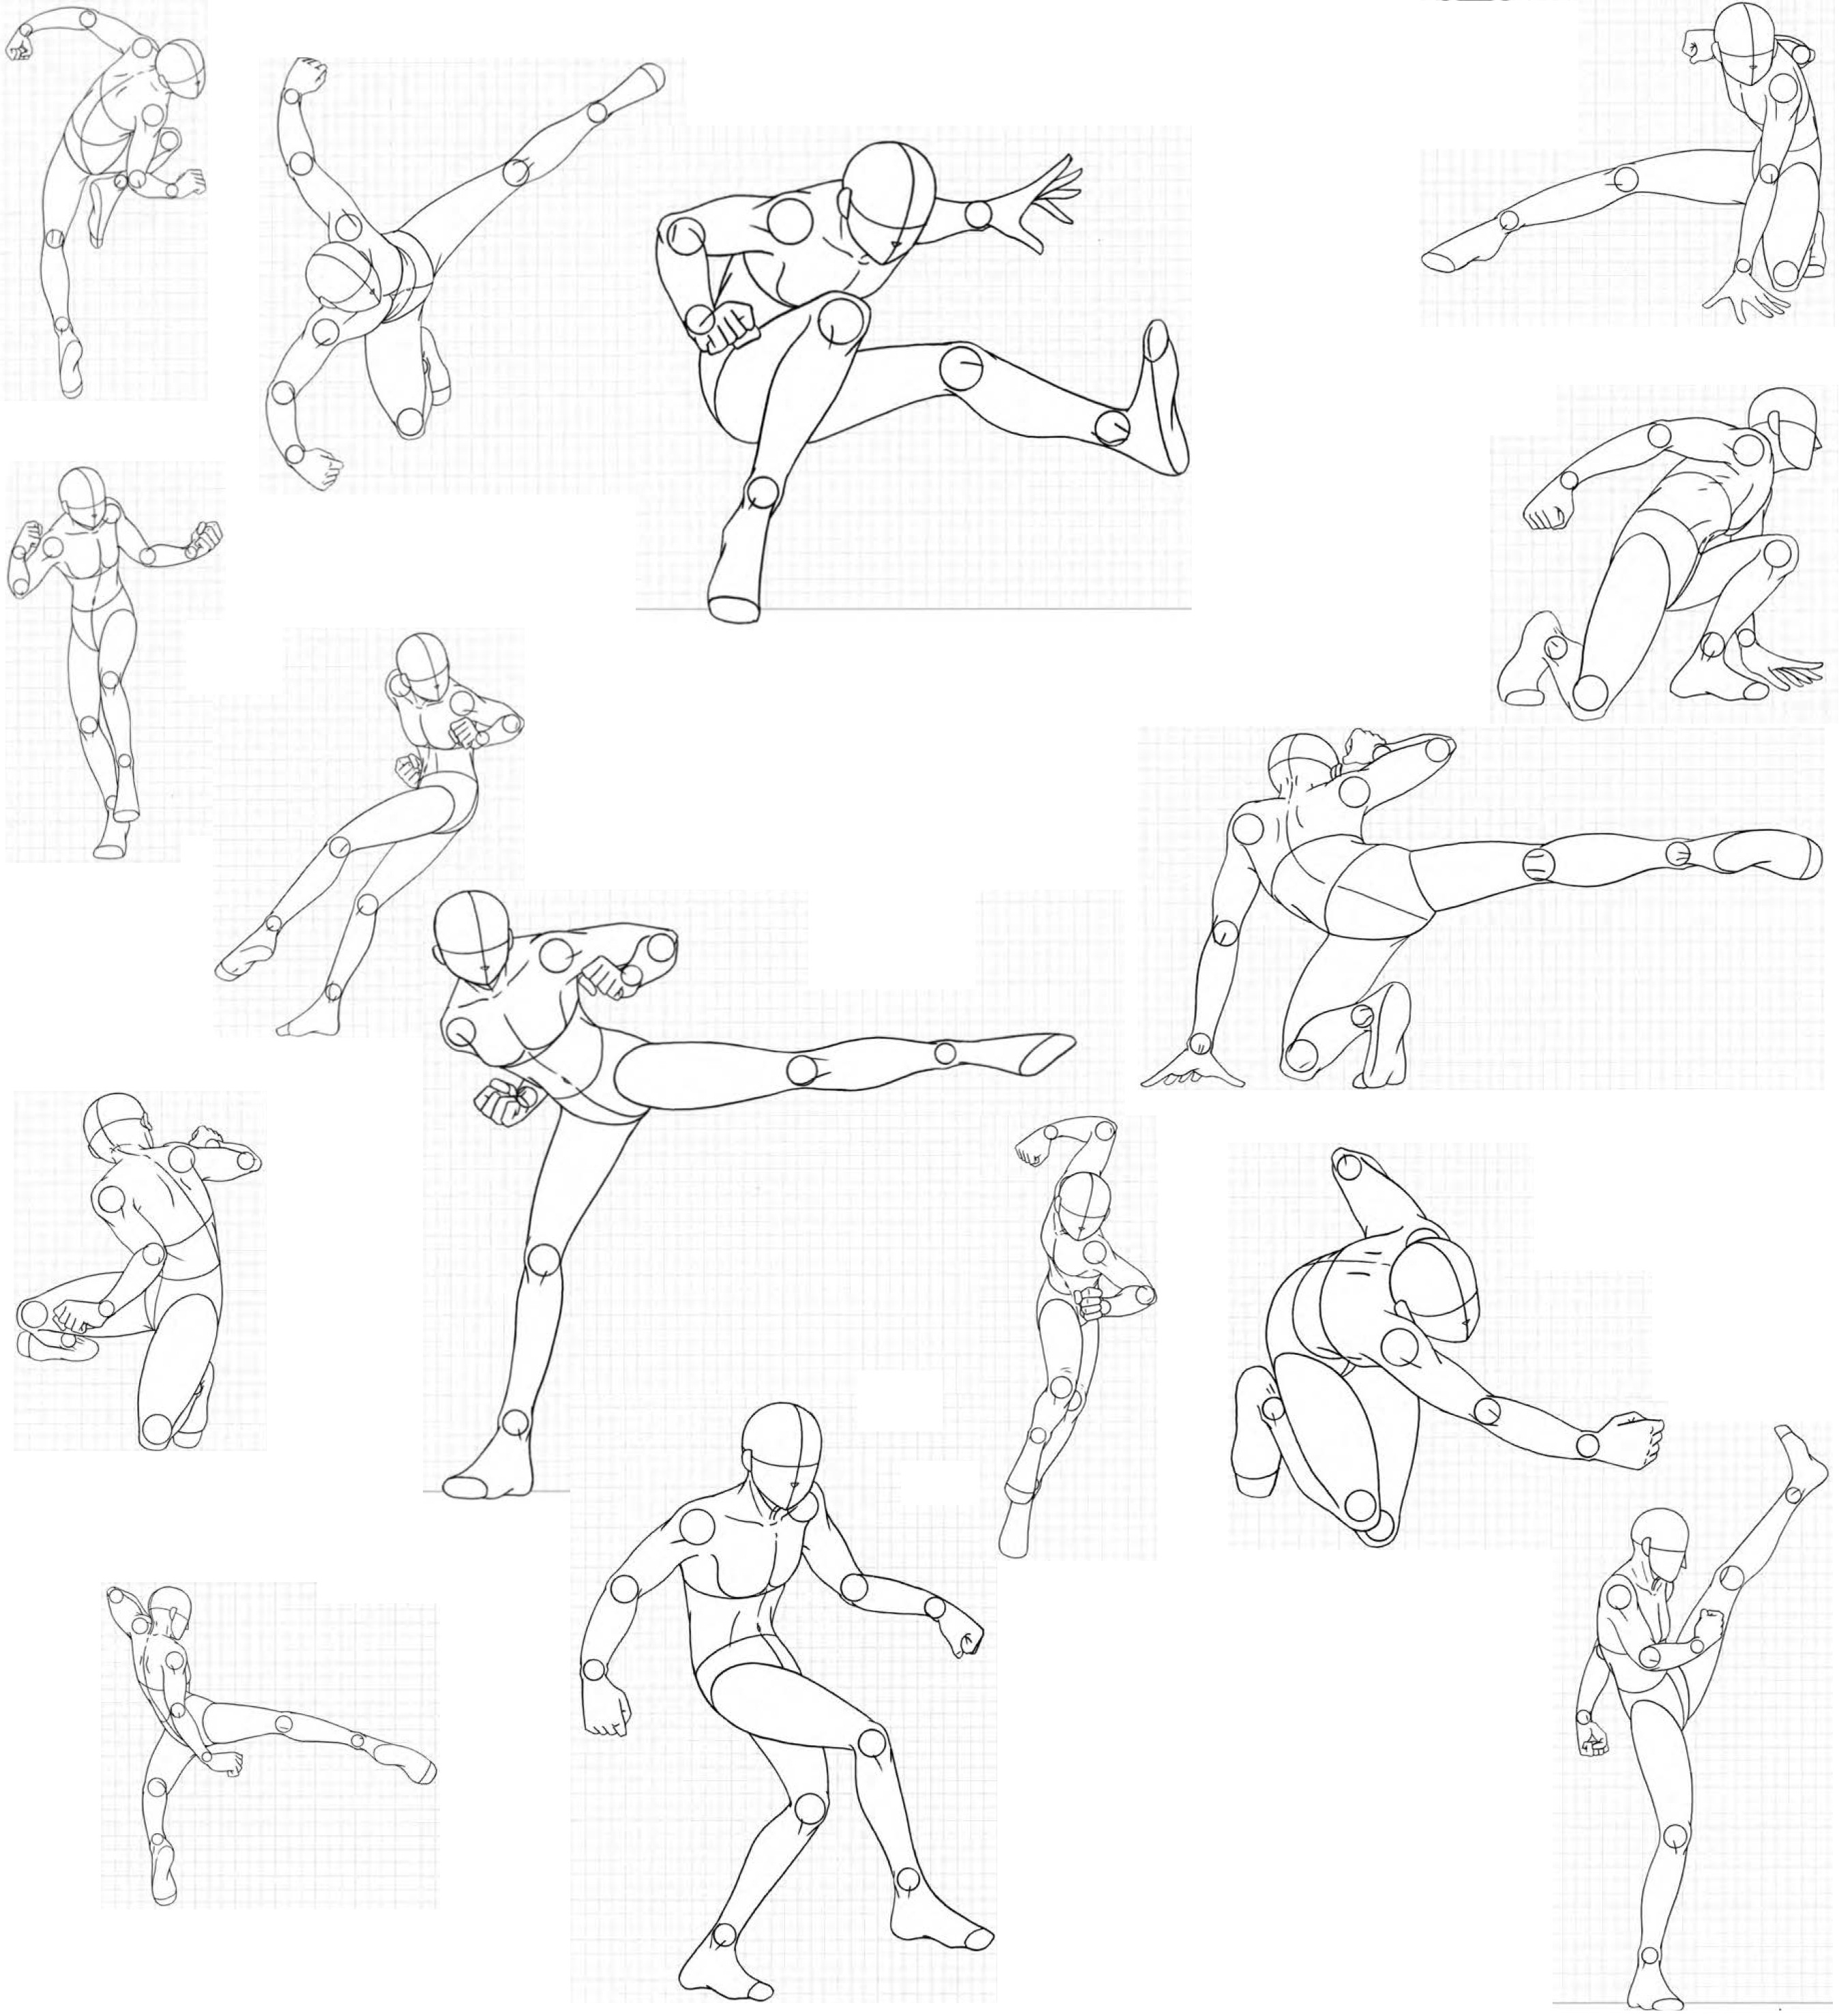 Body Poses Drawing at GetDrawings com | Free for personal use Body